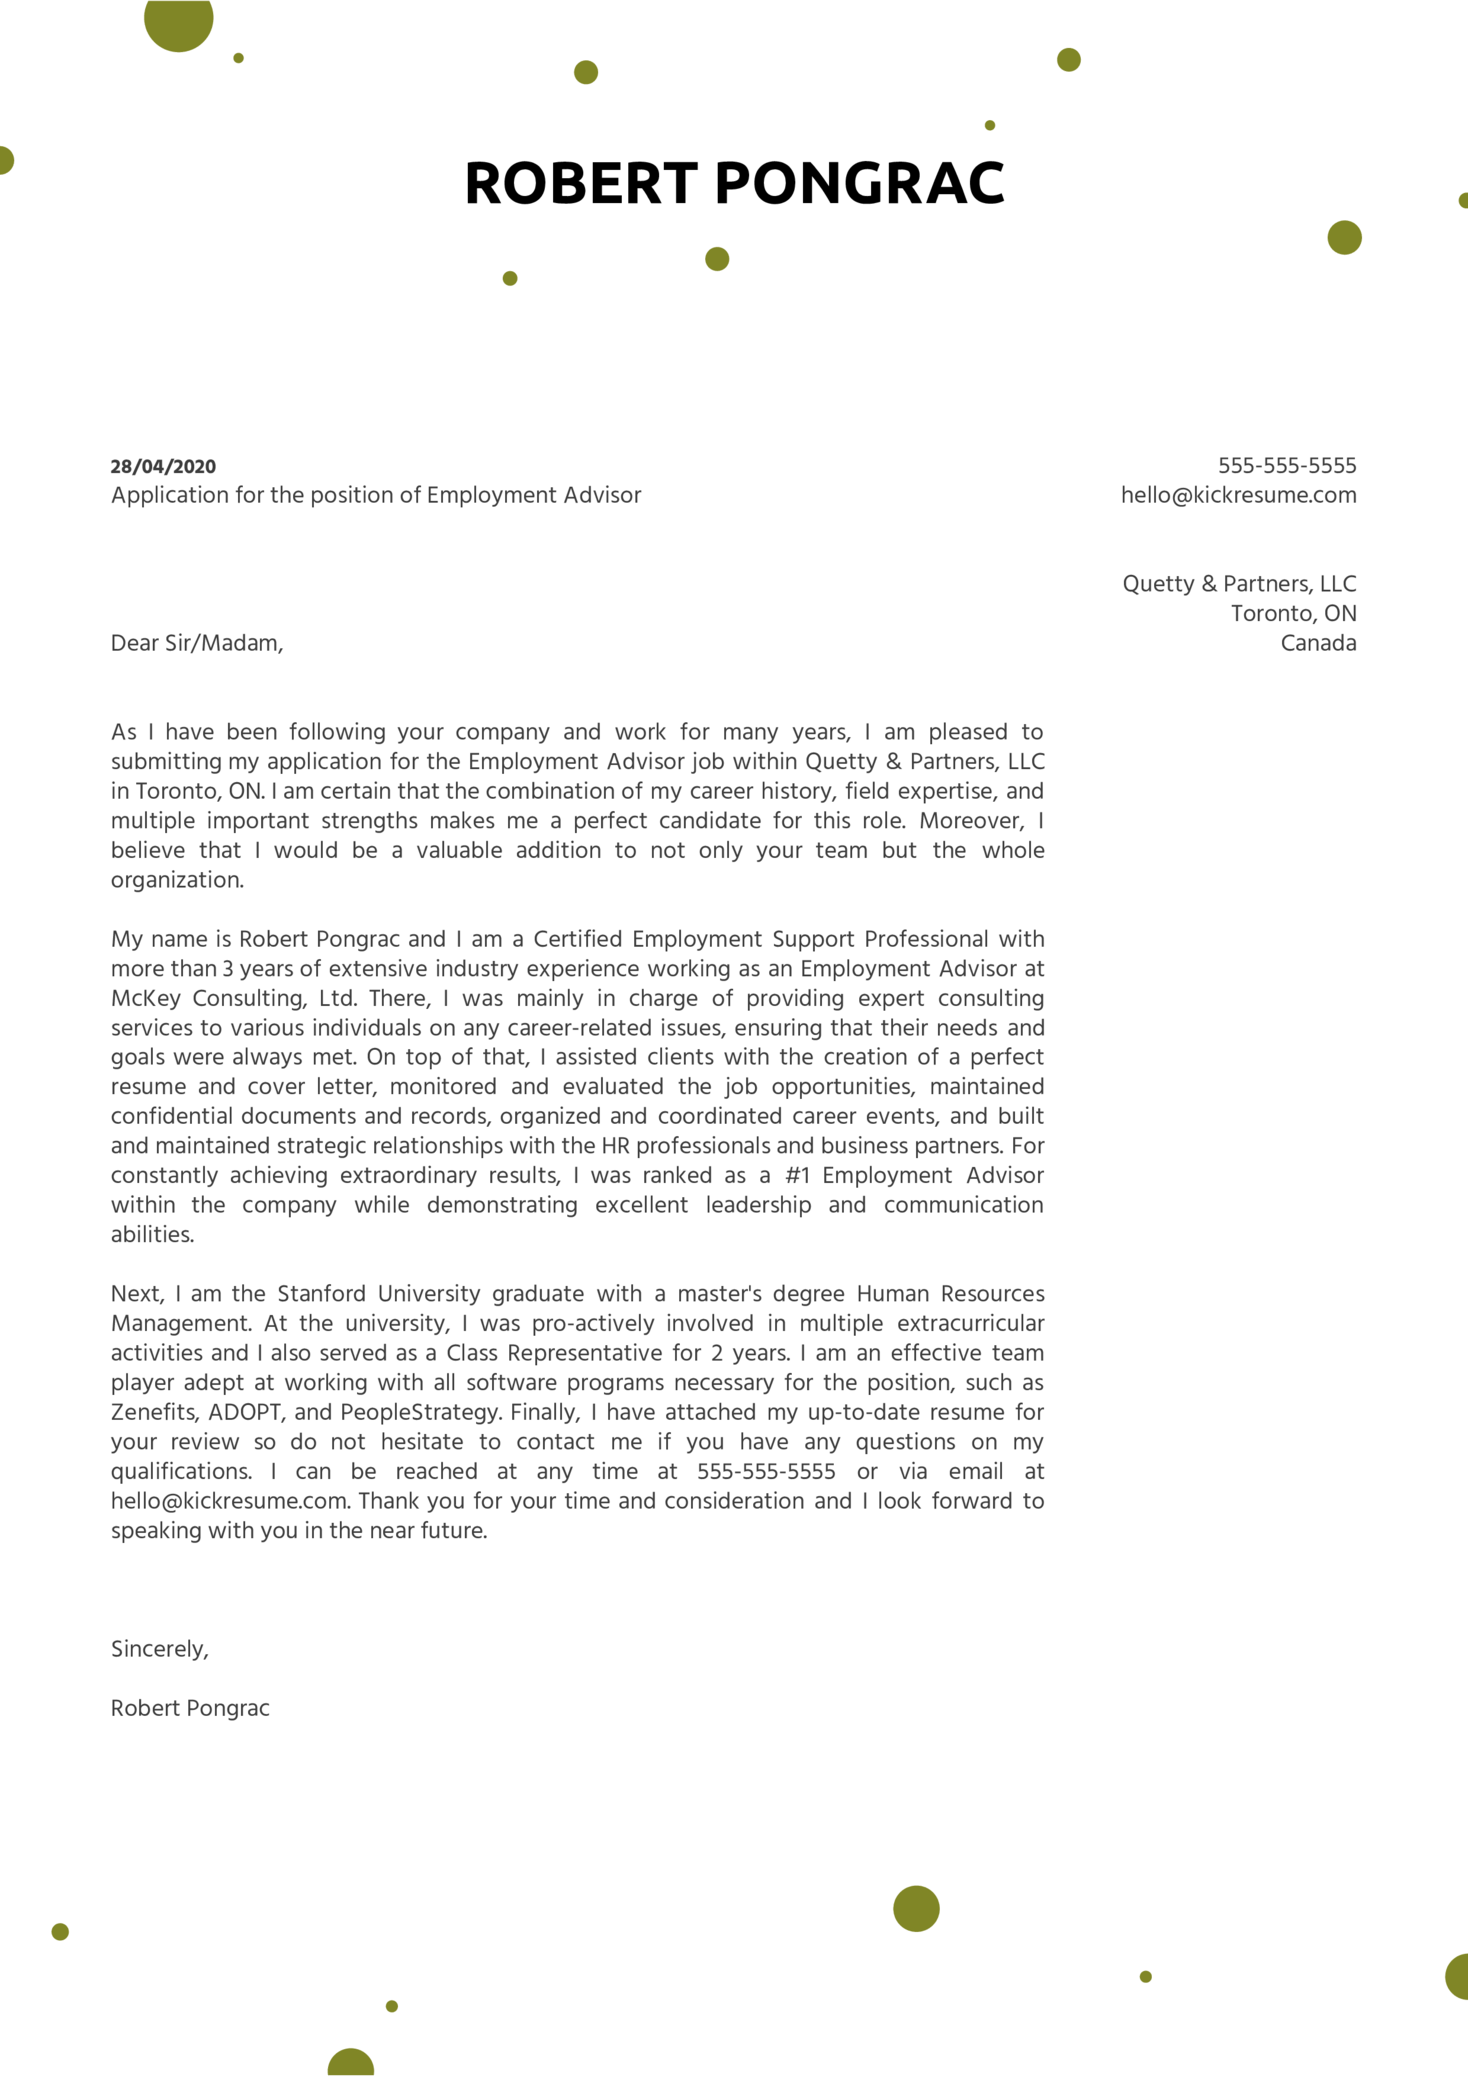 Employment Advisor Cover Letter Example